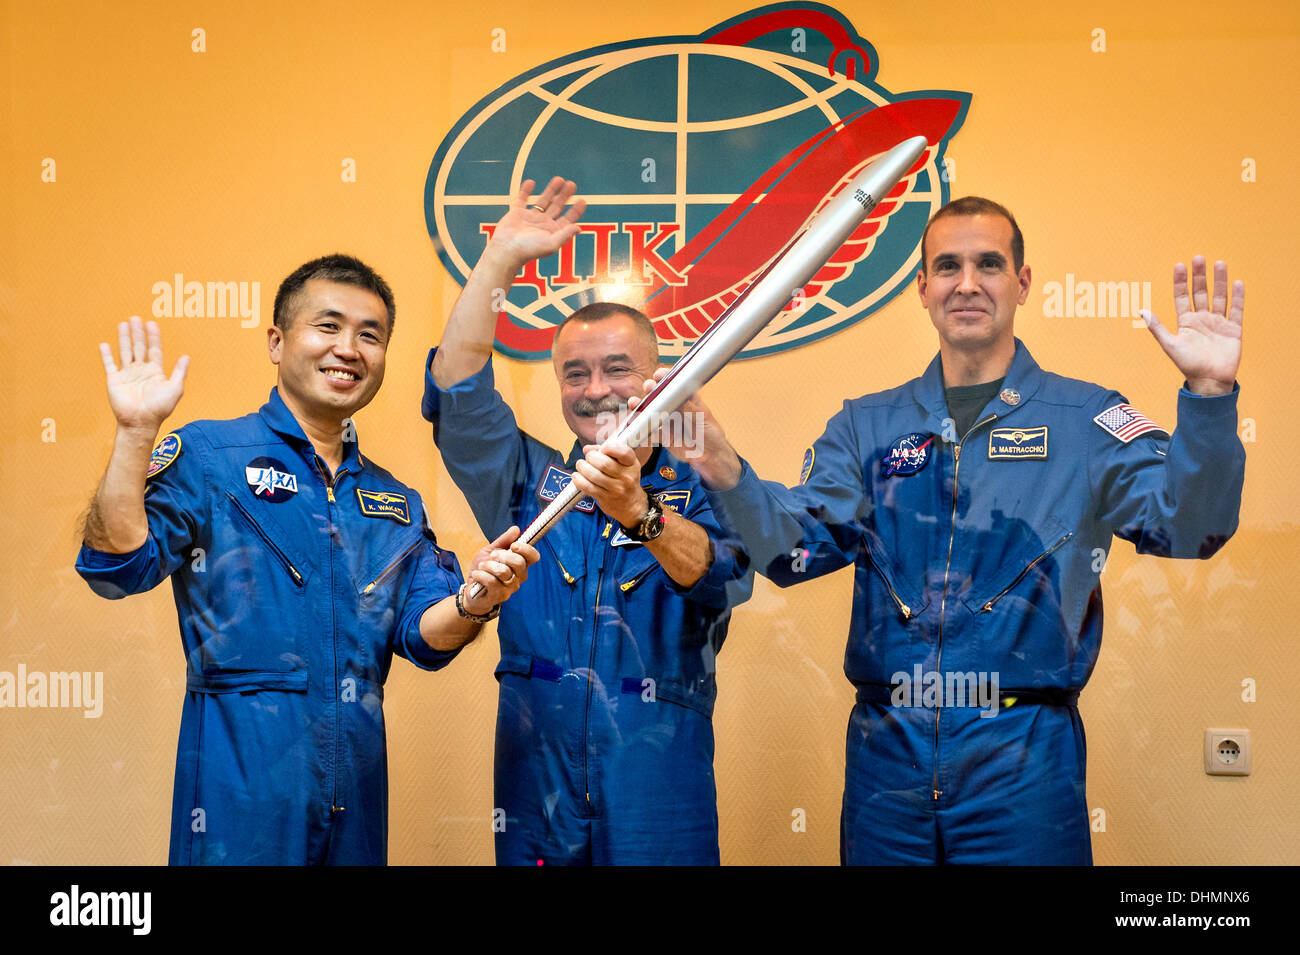 International Space Station Expedition 38 Flight Engineer Koichi Wakata of the Japan Aerospace Exploration Agency, left, Soyuz Commander Mikhail Tyurin of Roscosmos, and, Flight Engineer Rick Mastracchio of NASA, right, smile as they hold an Olympic torch that will be flown with them to the International Space Station during a press conference prior to launch November 6, 2013 at the Baikonur Cosmodrome, Kazakhstan. Tyurin, Mastracchio, and, Wakata will spend the next six months aboard the International Space Station. - Stock Image